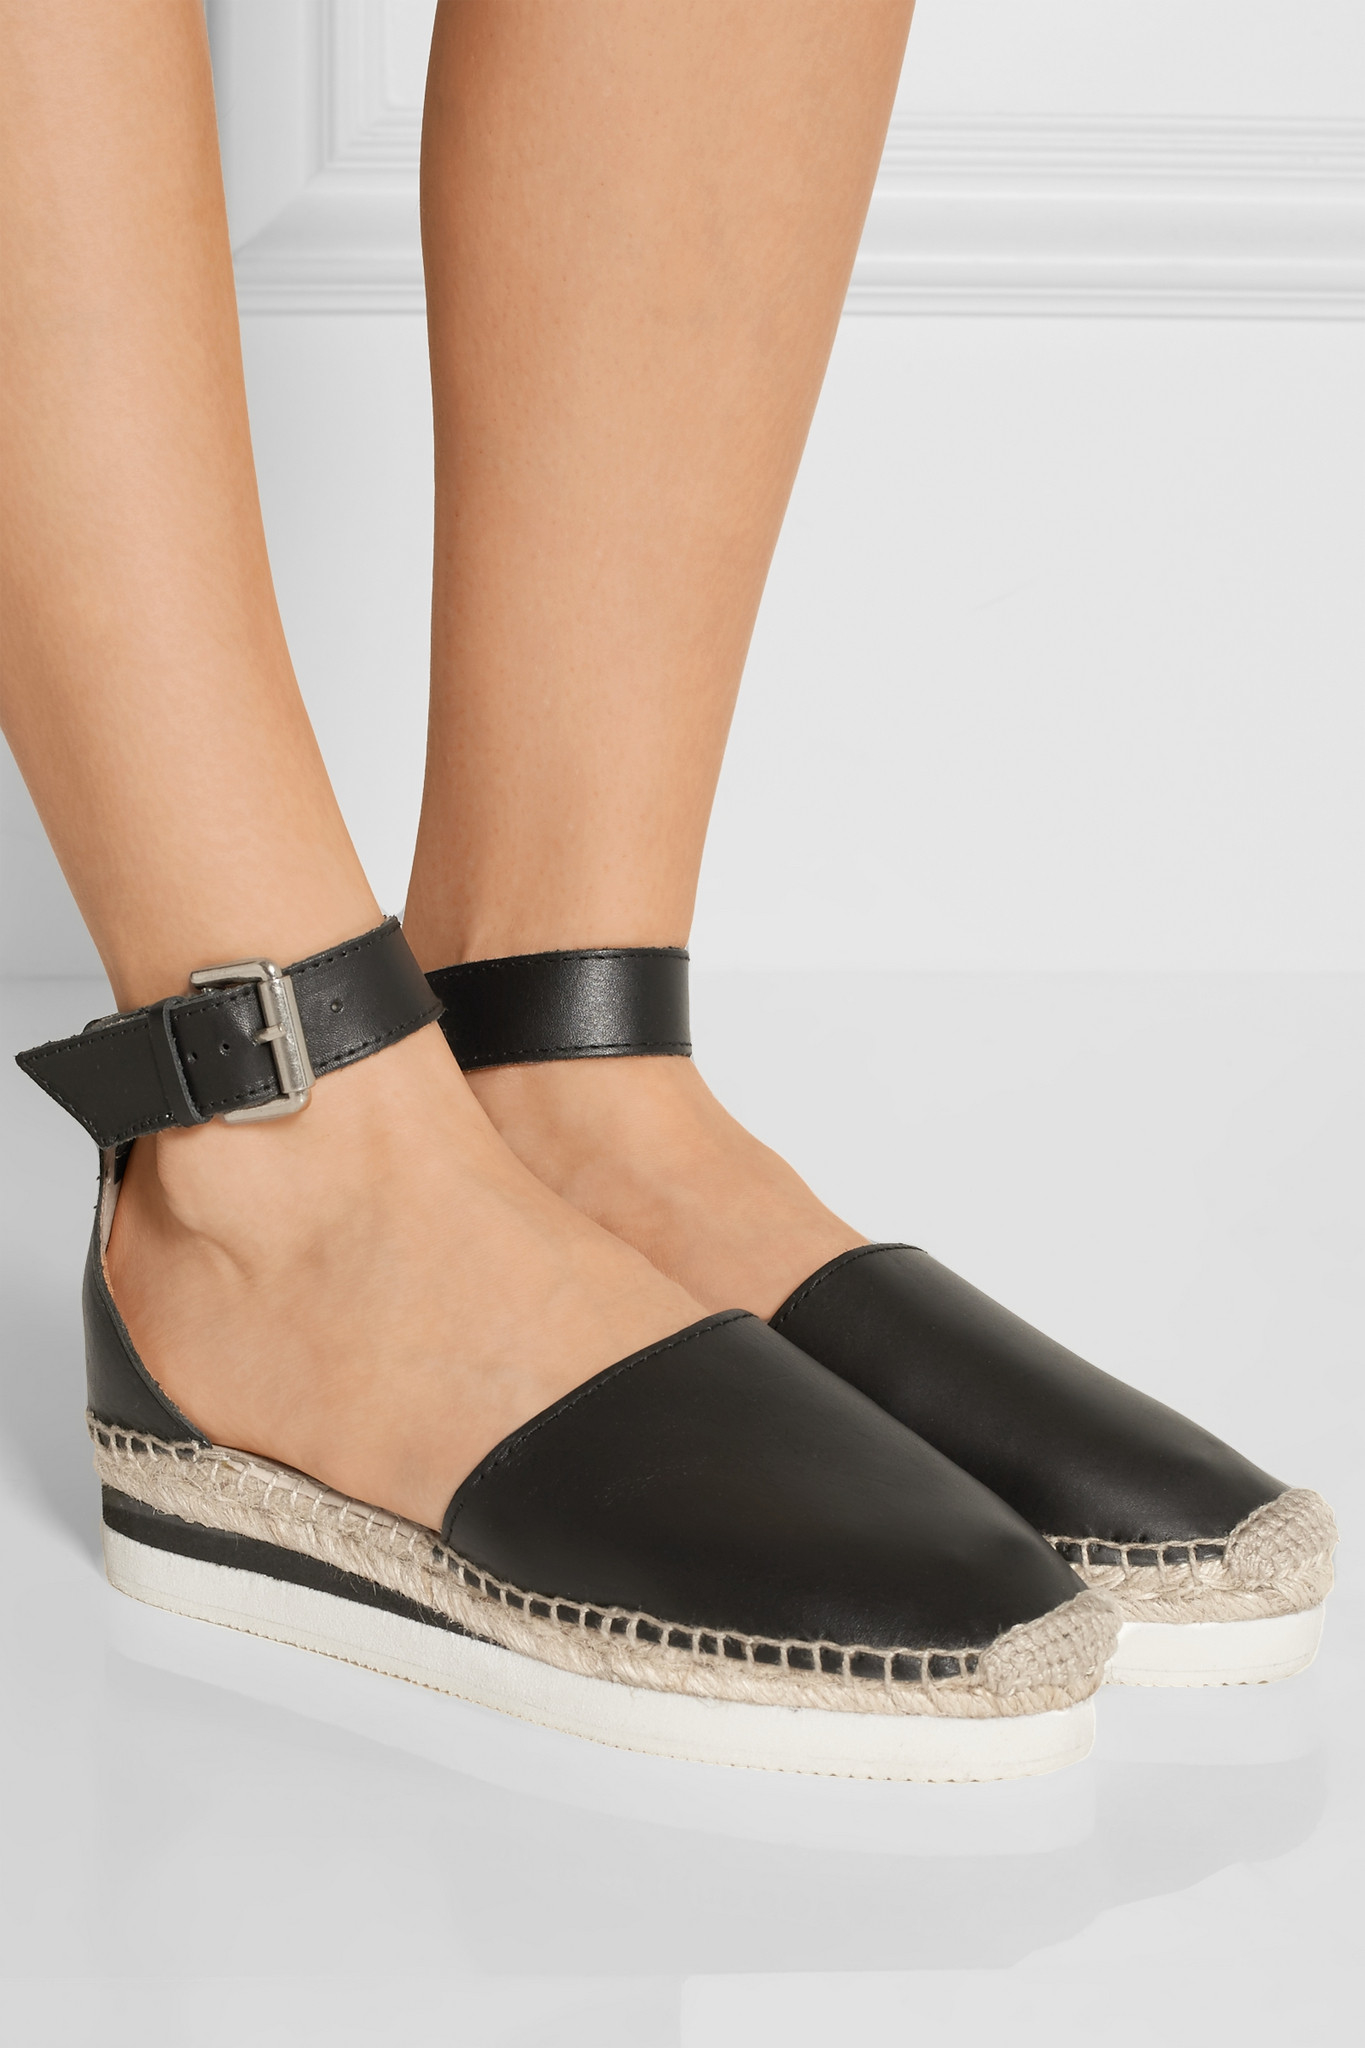 908efca3f81 See By Chloé See By Chloé - Glyn Leather Espadrilles - Black in ...